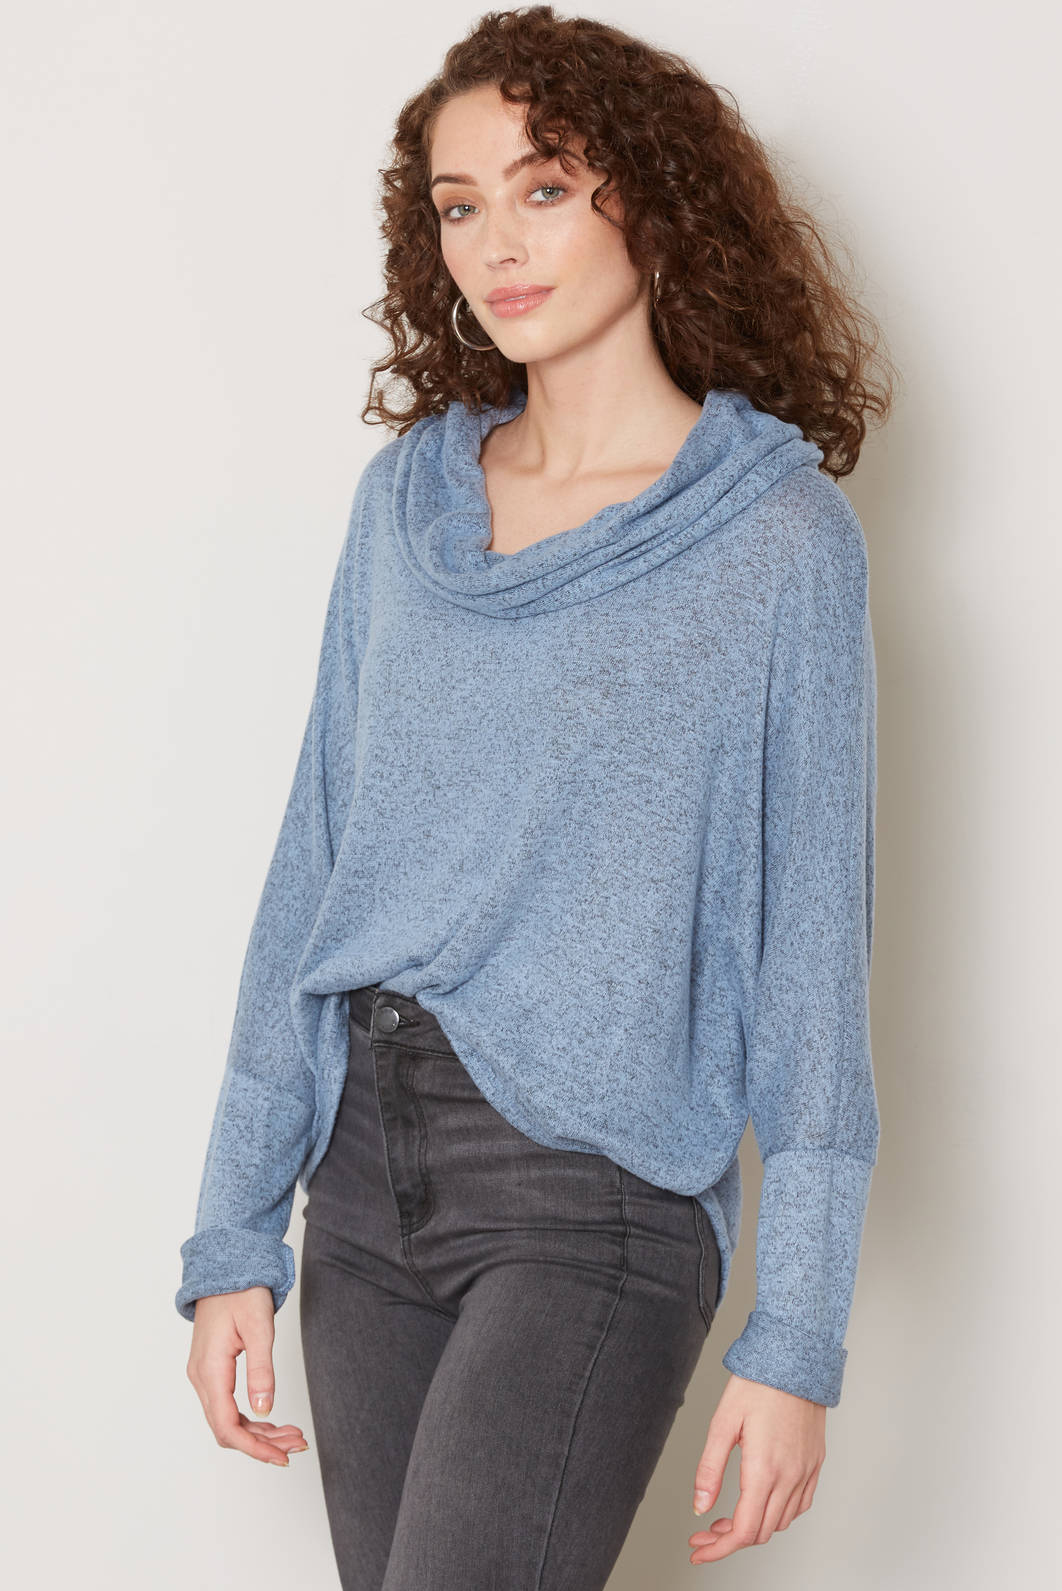 Neely Cowl Neck Hacci Top